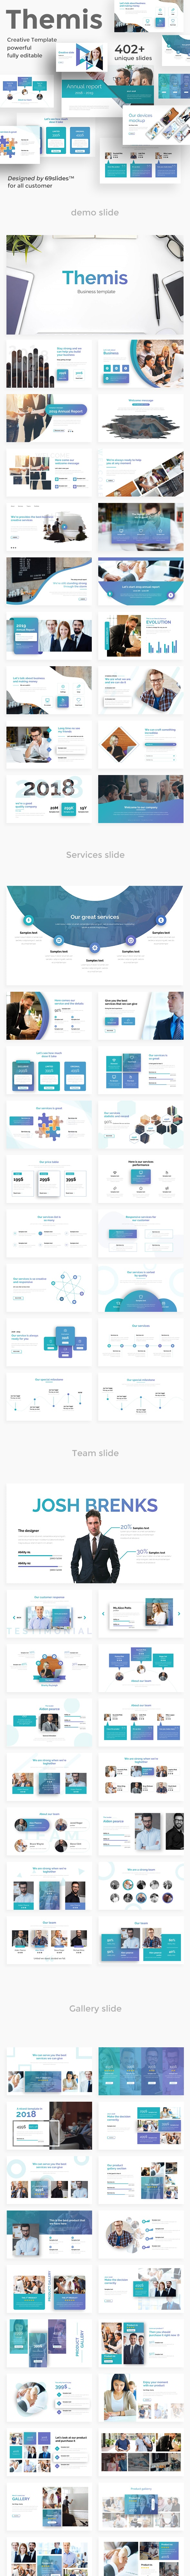 Themis Multipurpose Powerpoint Template - Business PowerPoint Templates